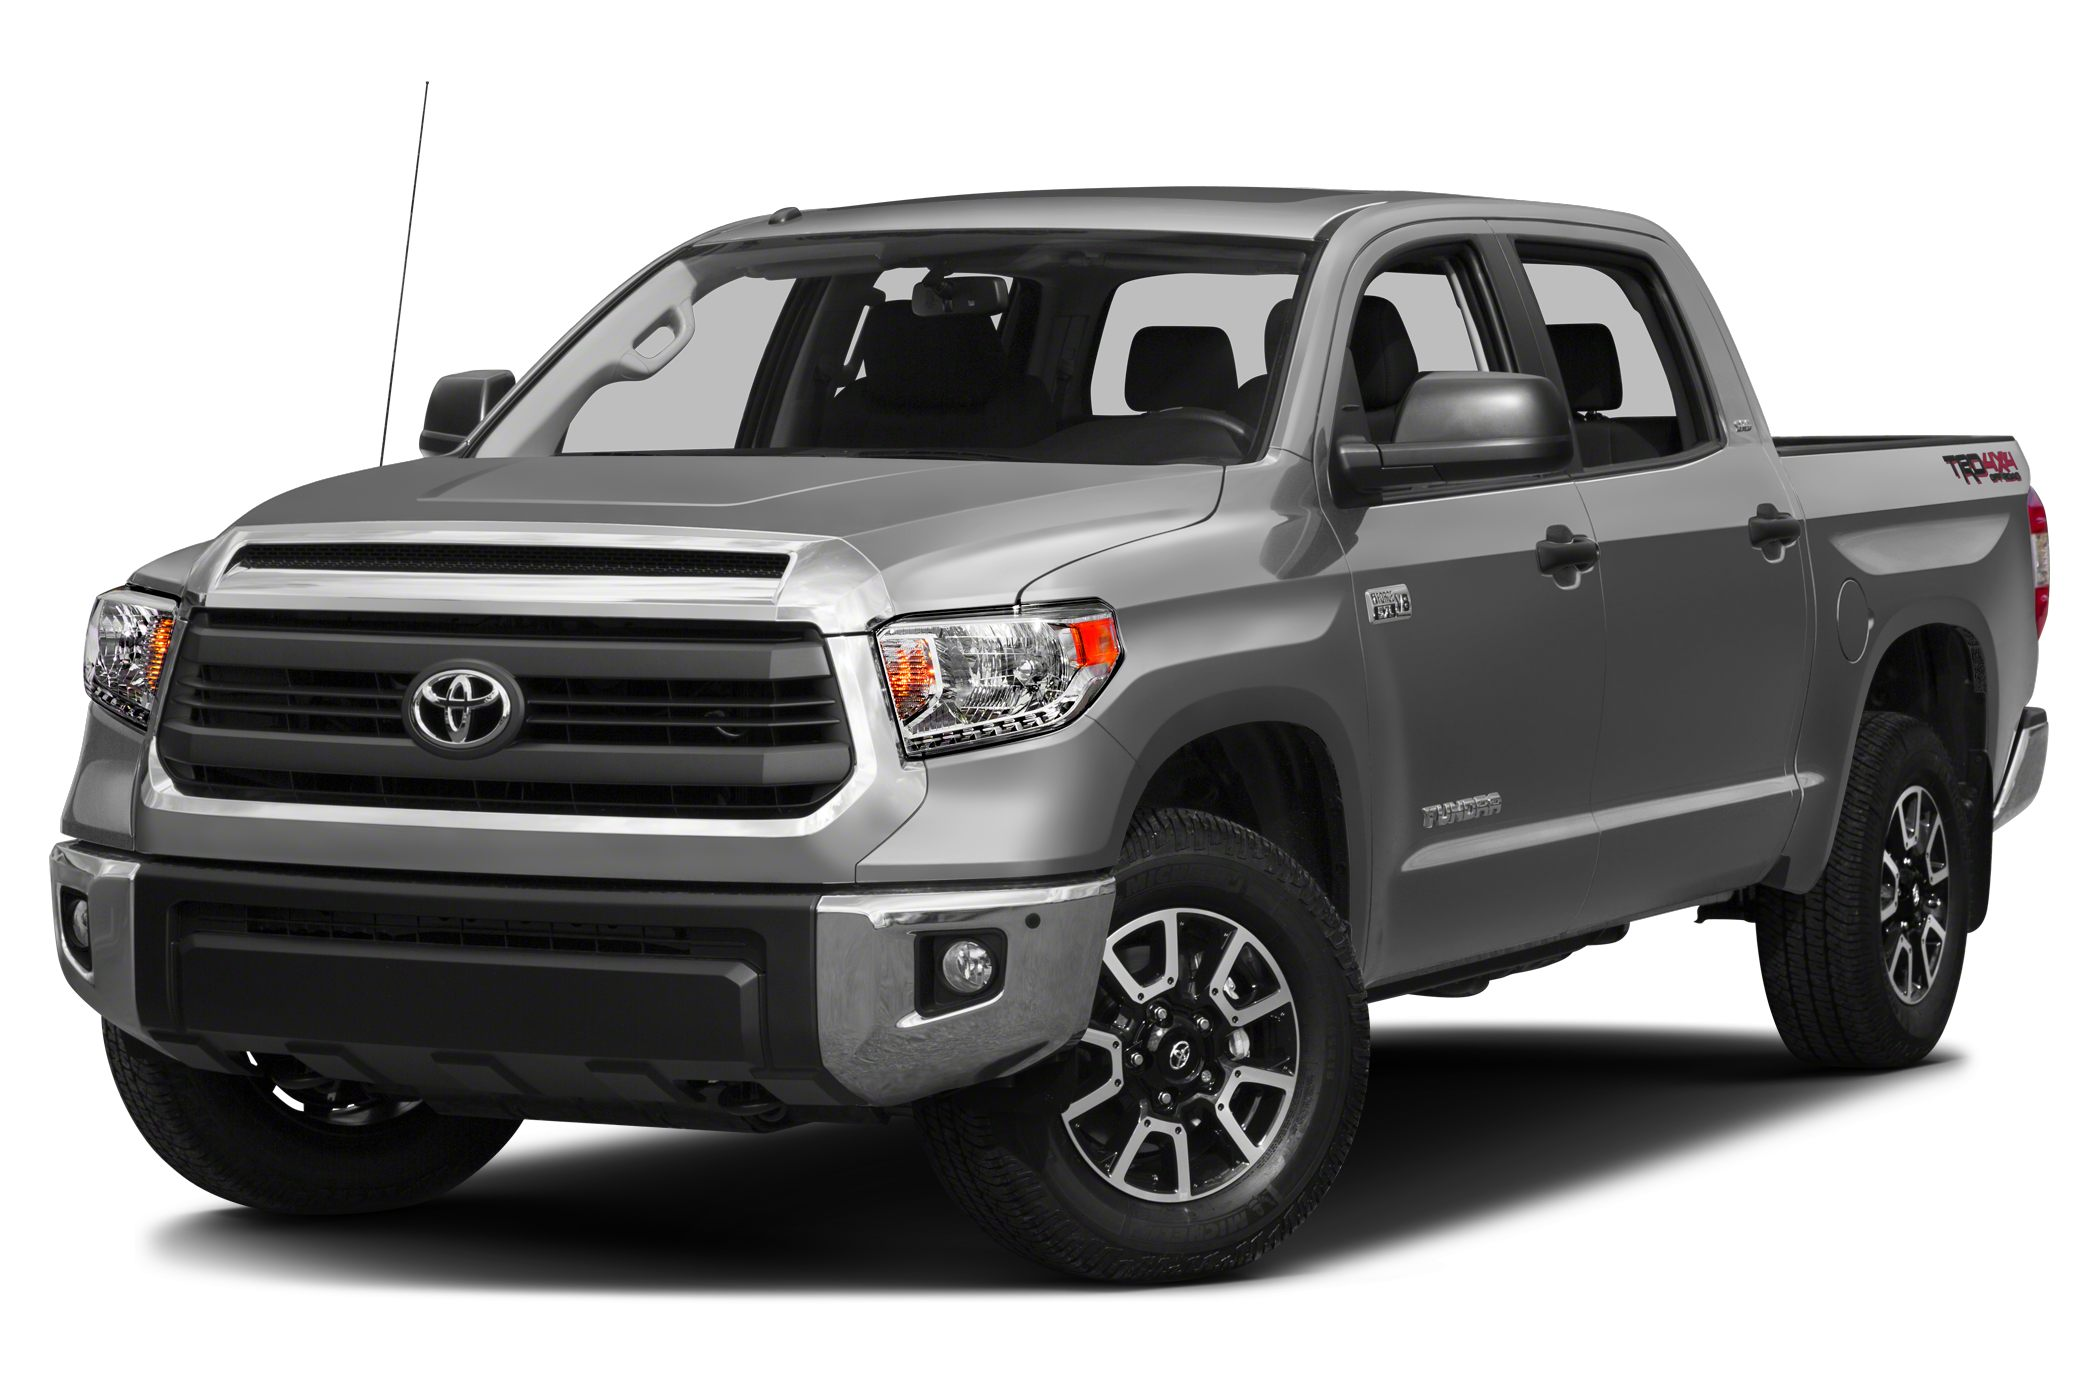 2014 Toyota Tundra SR5 4WD Short Bed Crew Cab Toyota has outdone itself with this dependable 20